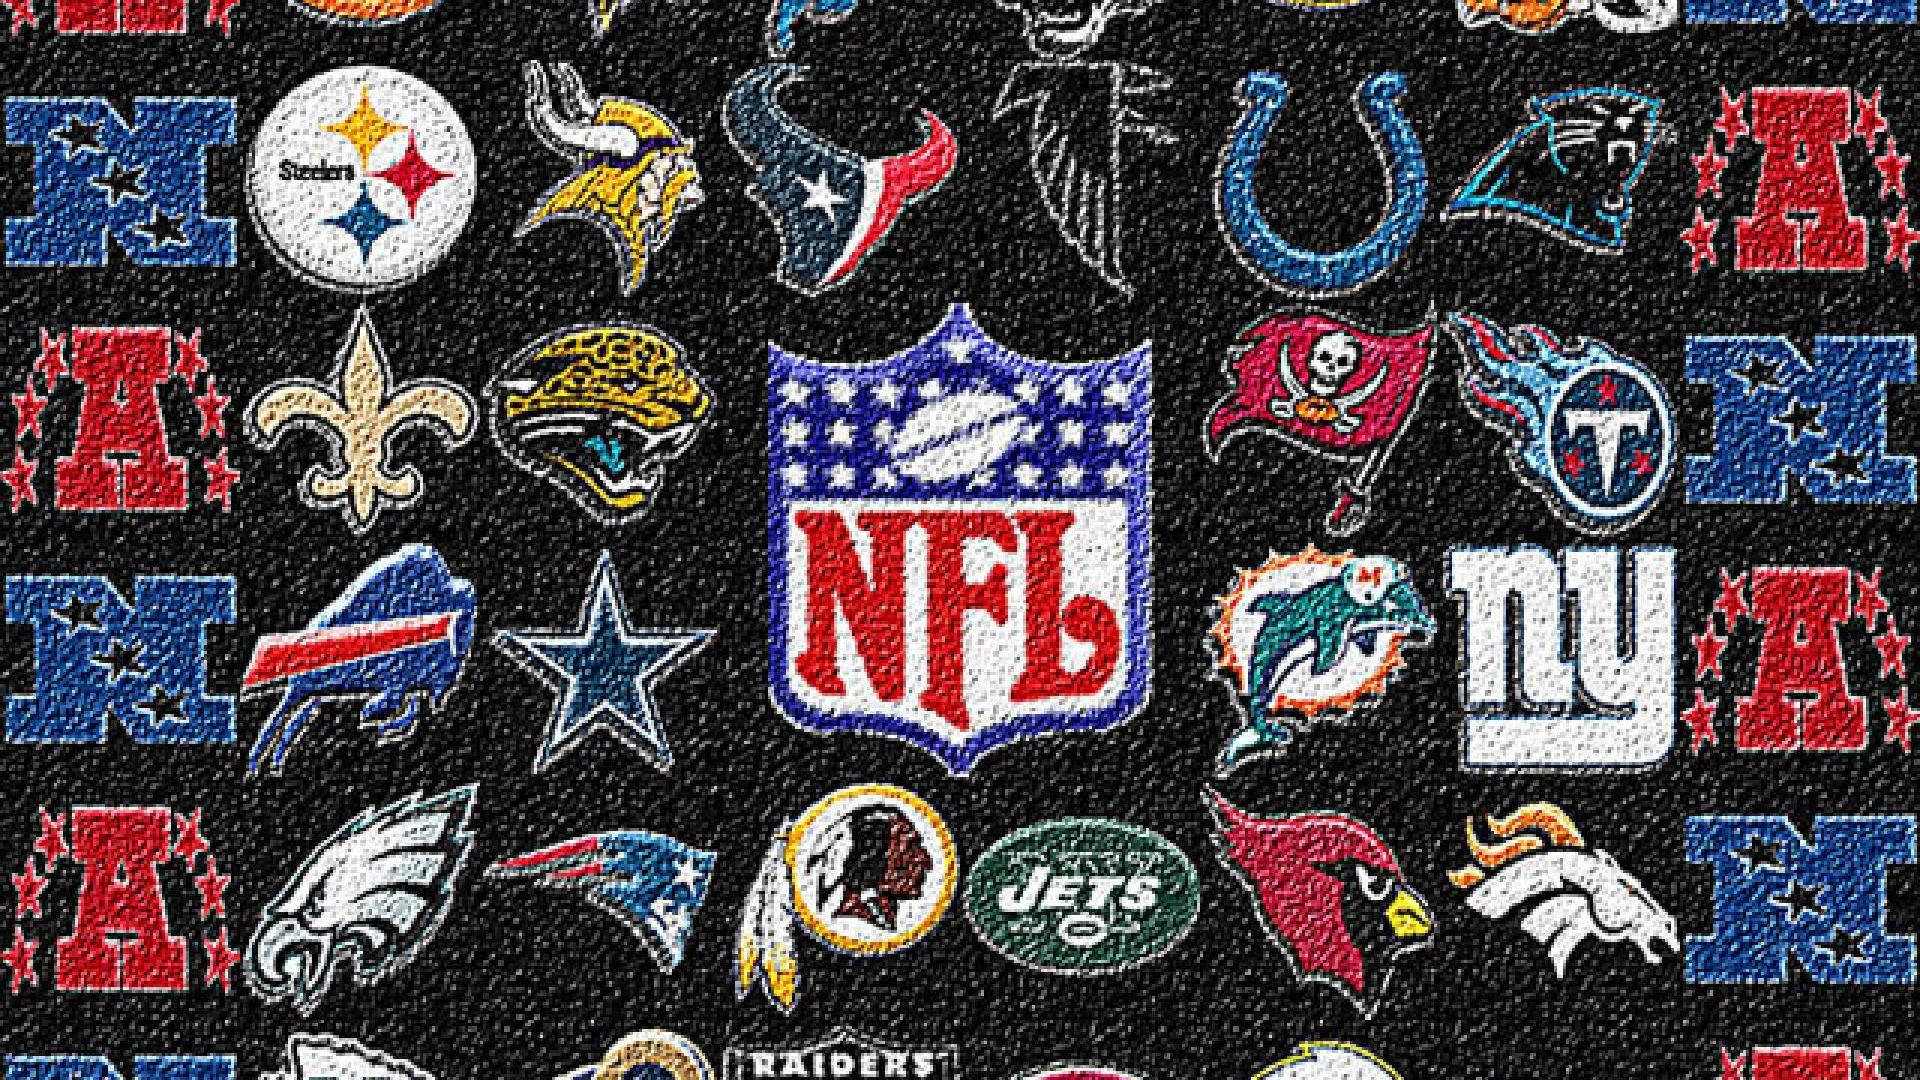 Nfl Wallpapers PC 4BB3GD6 Wallperiocom 1920x1080